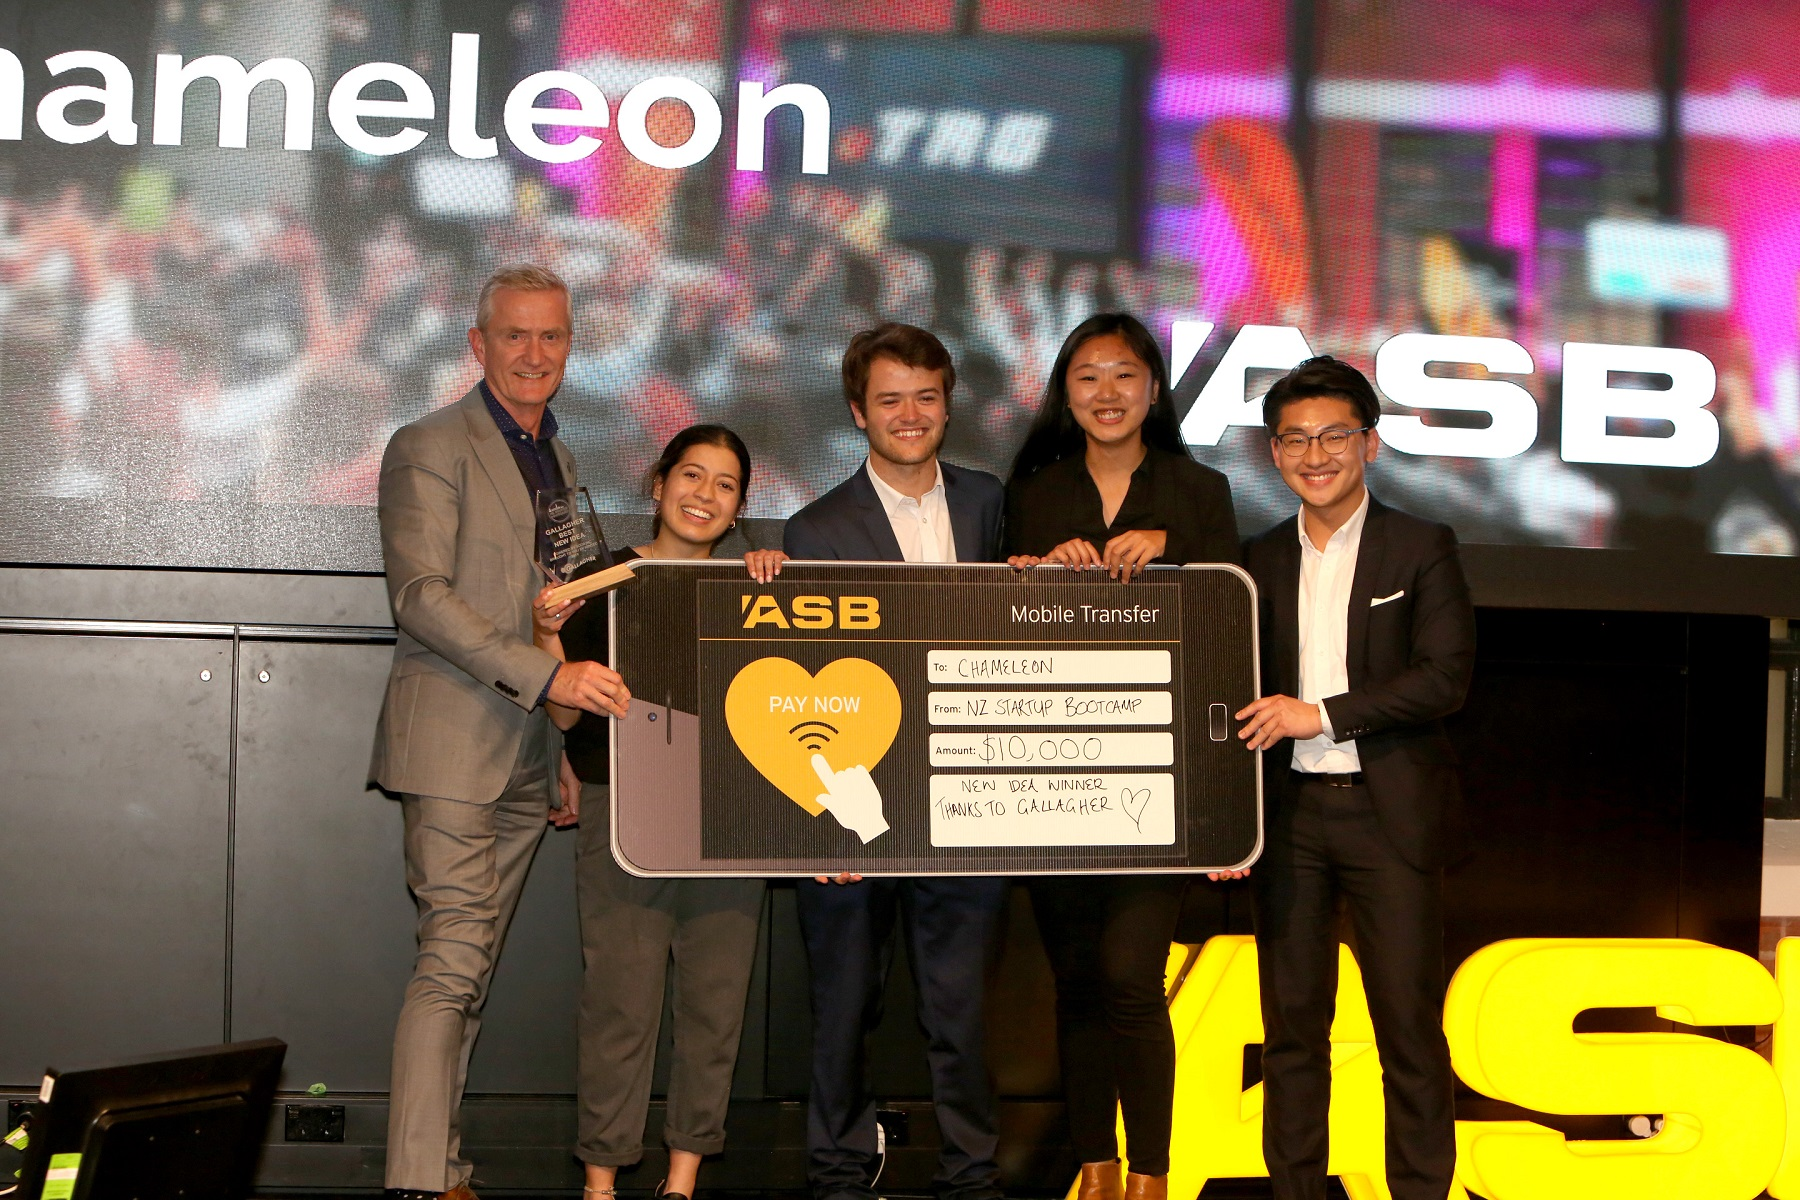 Crisis Management Chameleon won Best New Idea at the NZ Startup Bootcamp